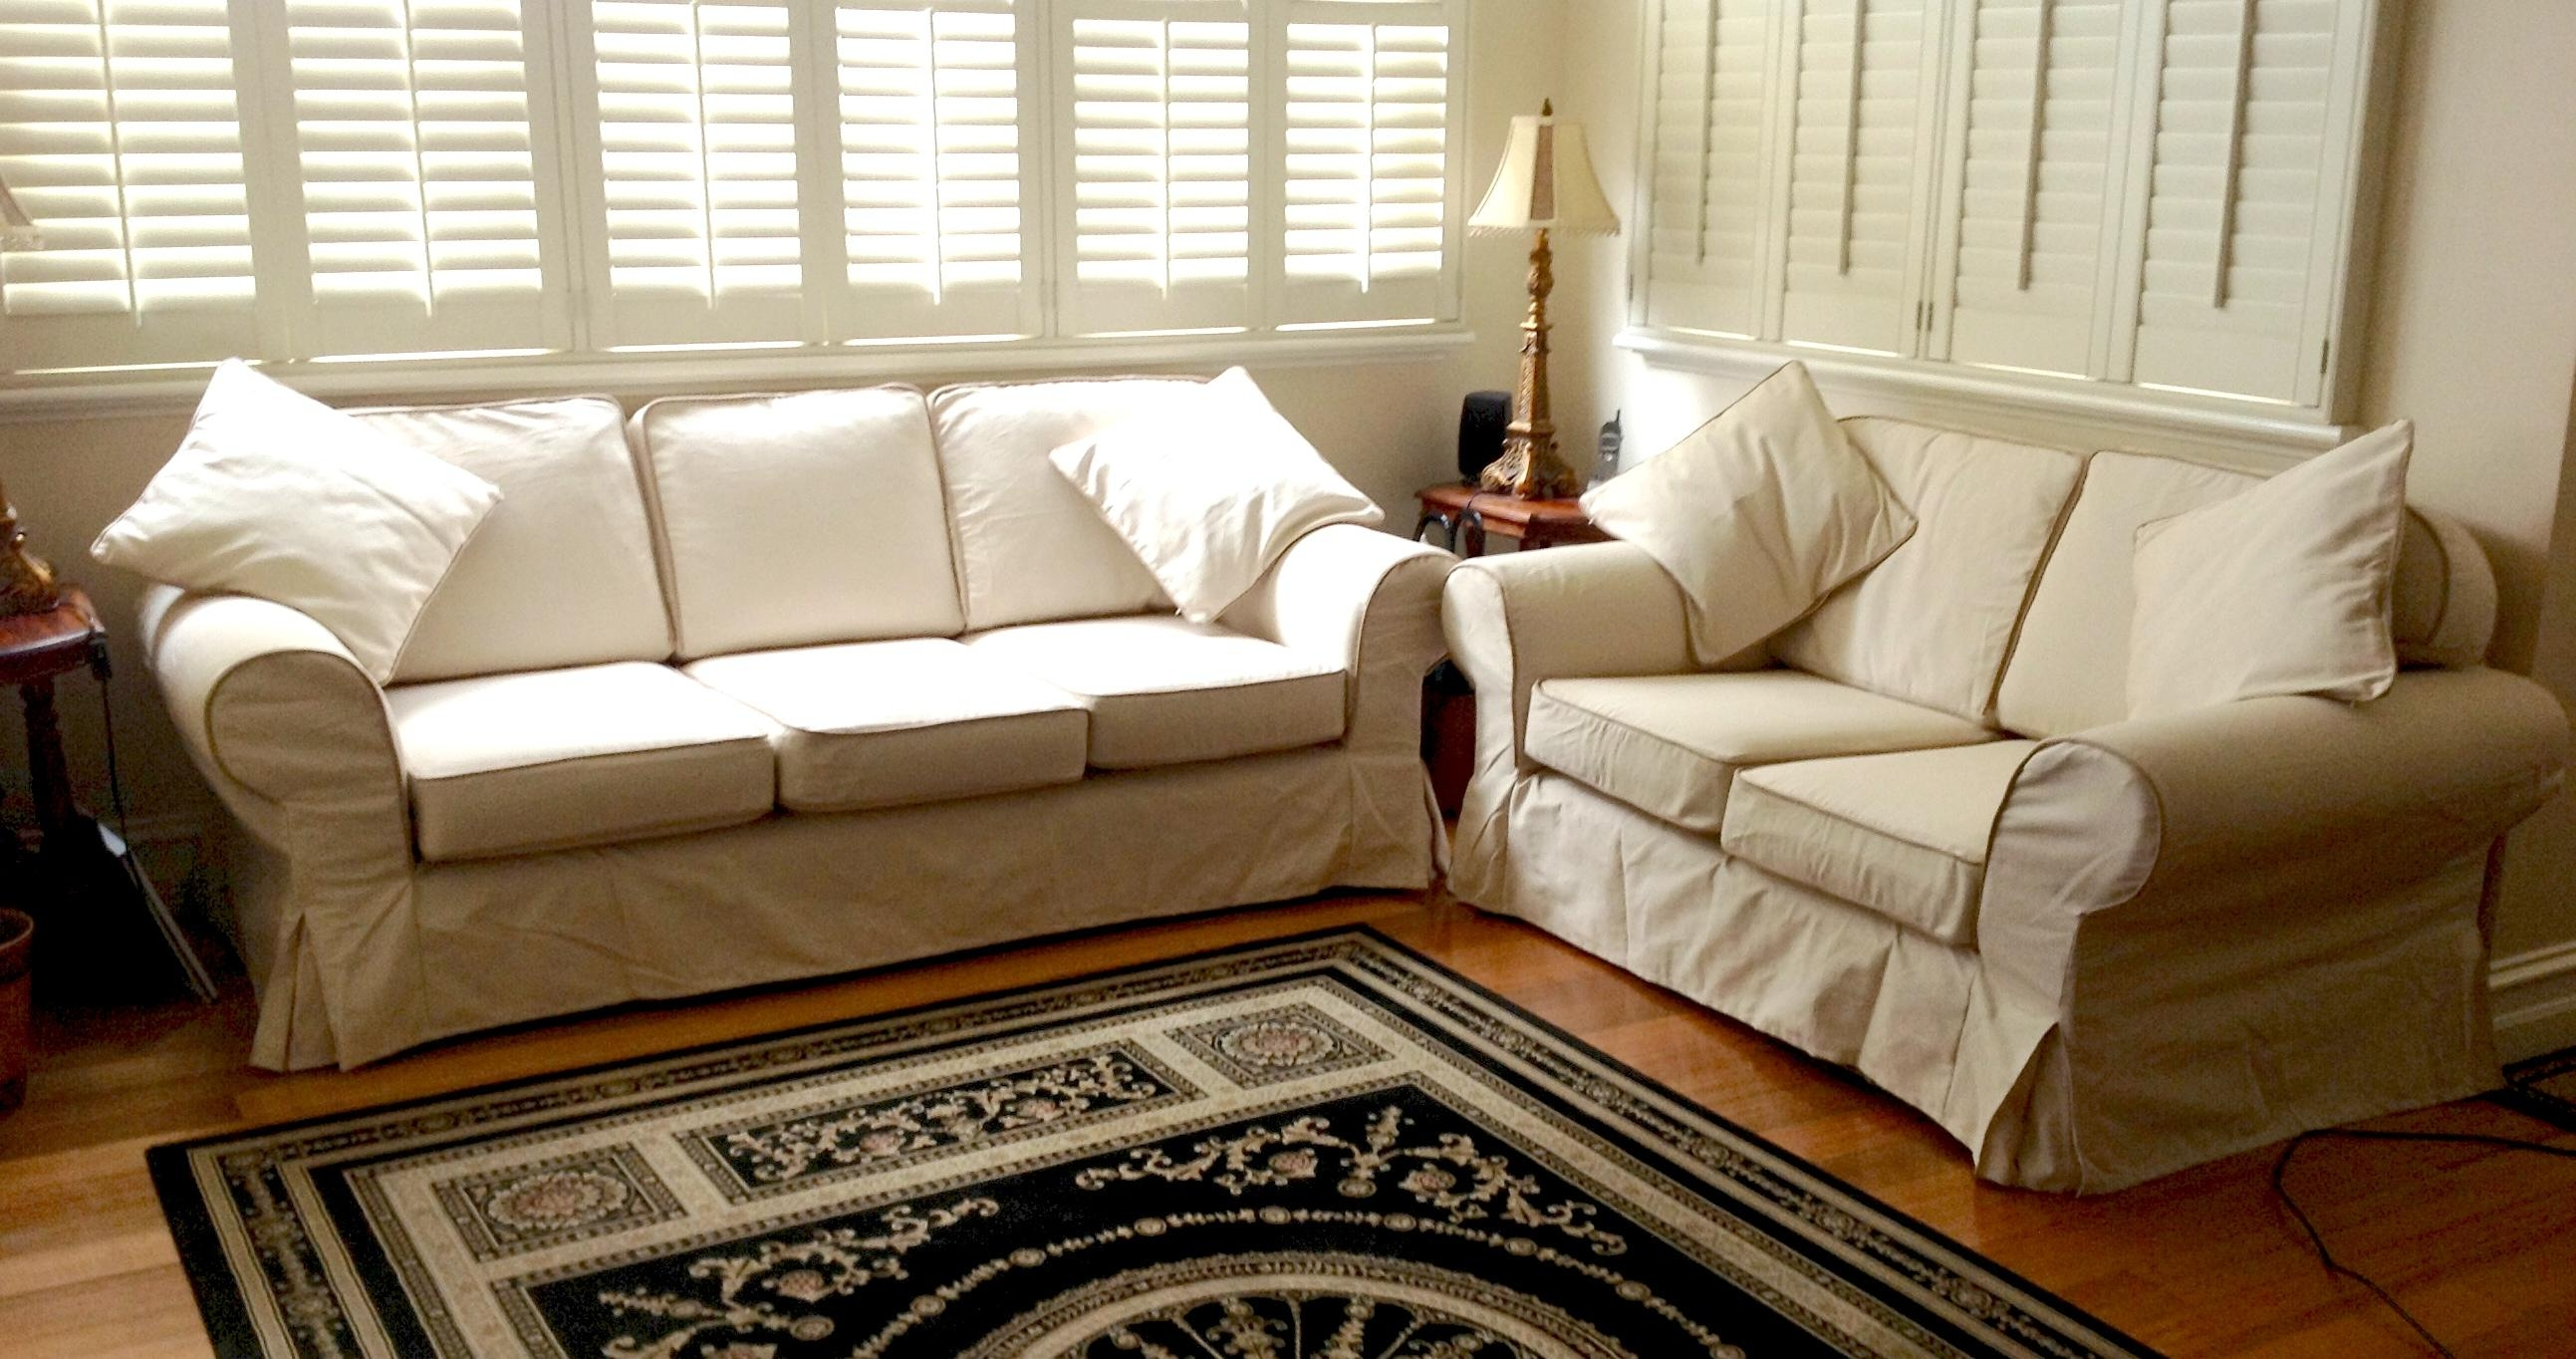 Custom Slipcovers And Couch Cover For Any Sofa Online For Sofa Loveseat Slipcovers (Image 3 of 25)